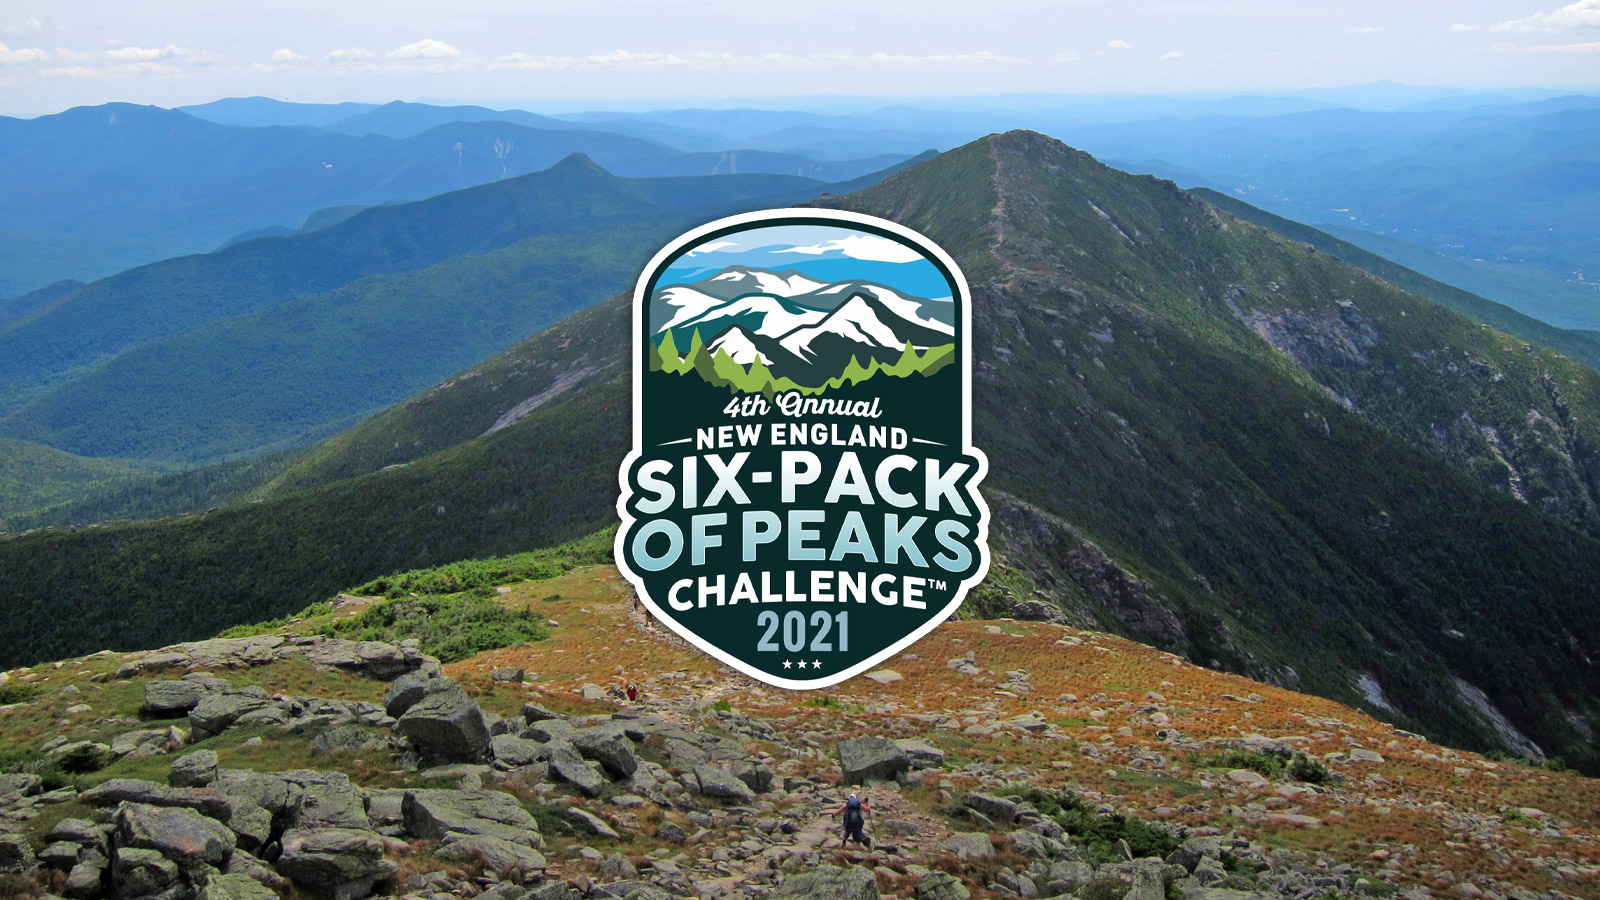 2021 New England Six-Pack of Peaks Challenge Discussion Forum